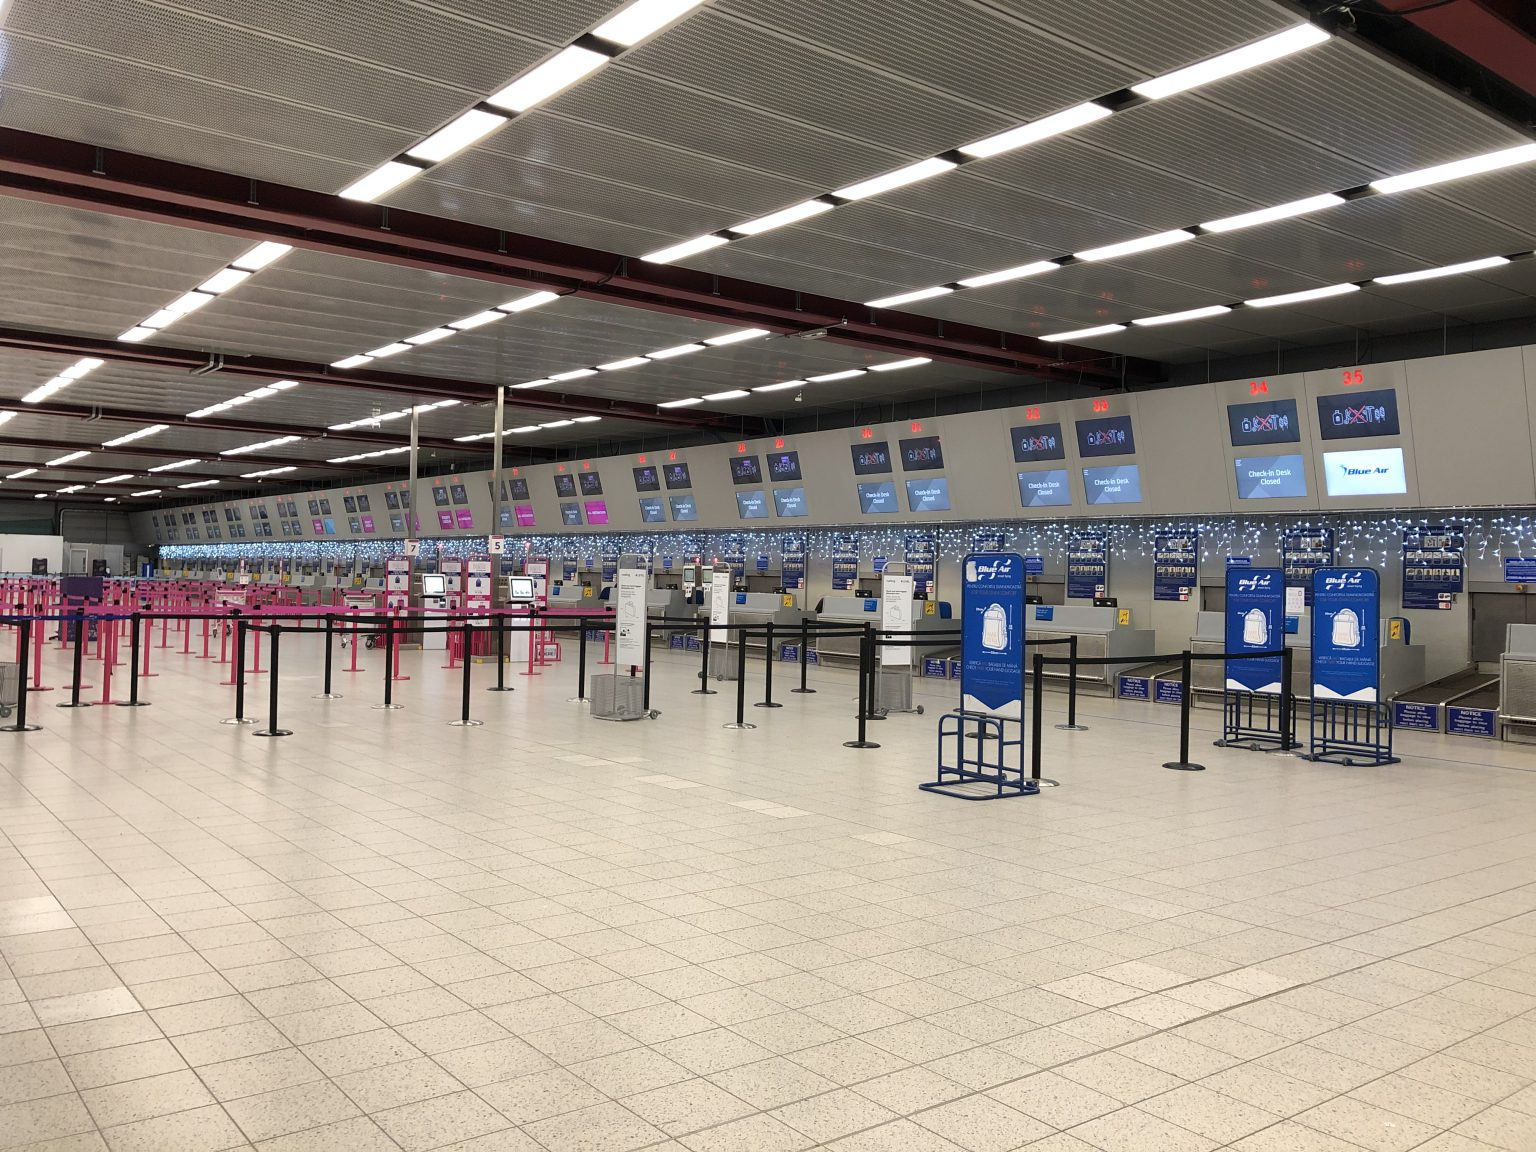 Check-in desks and advertising screens